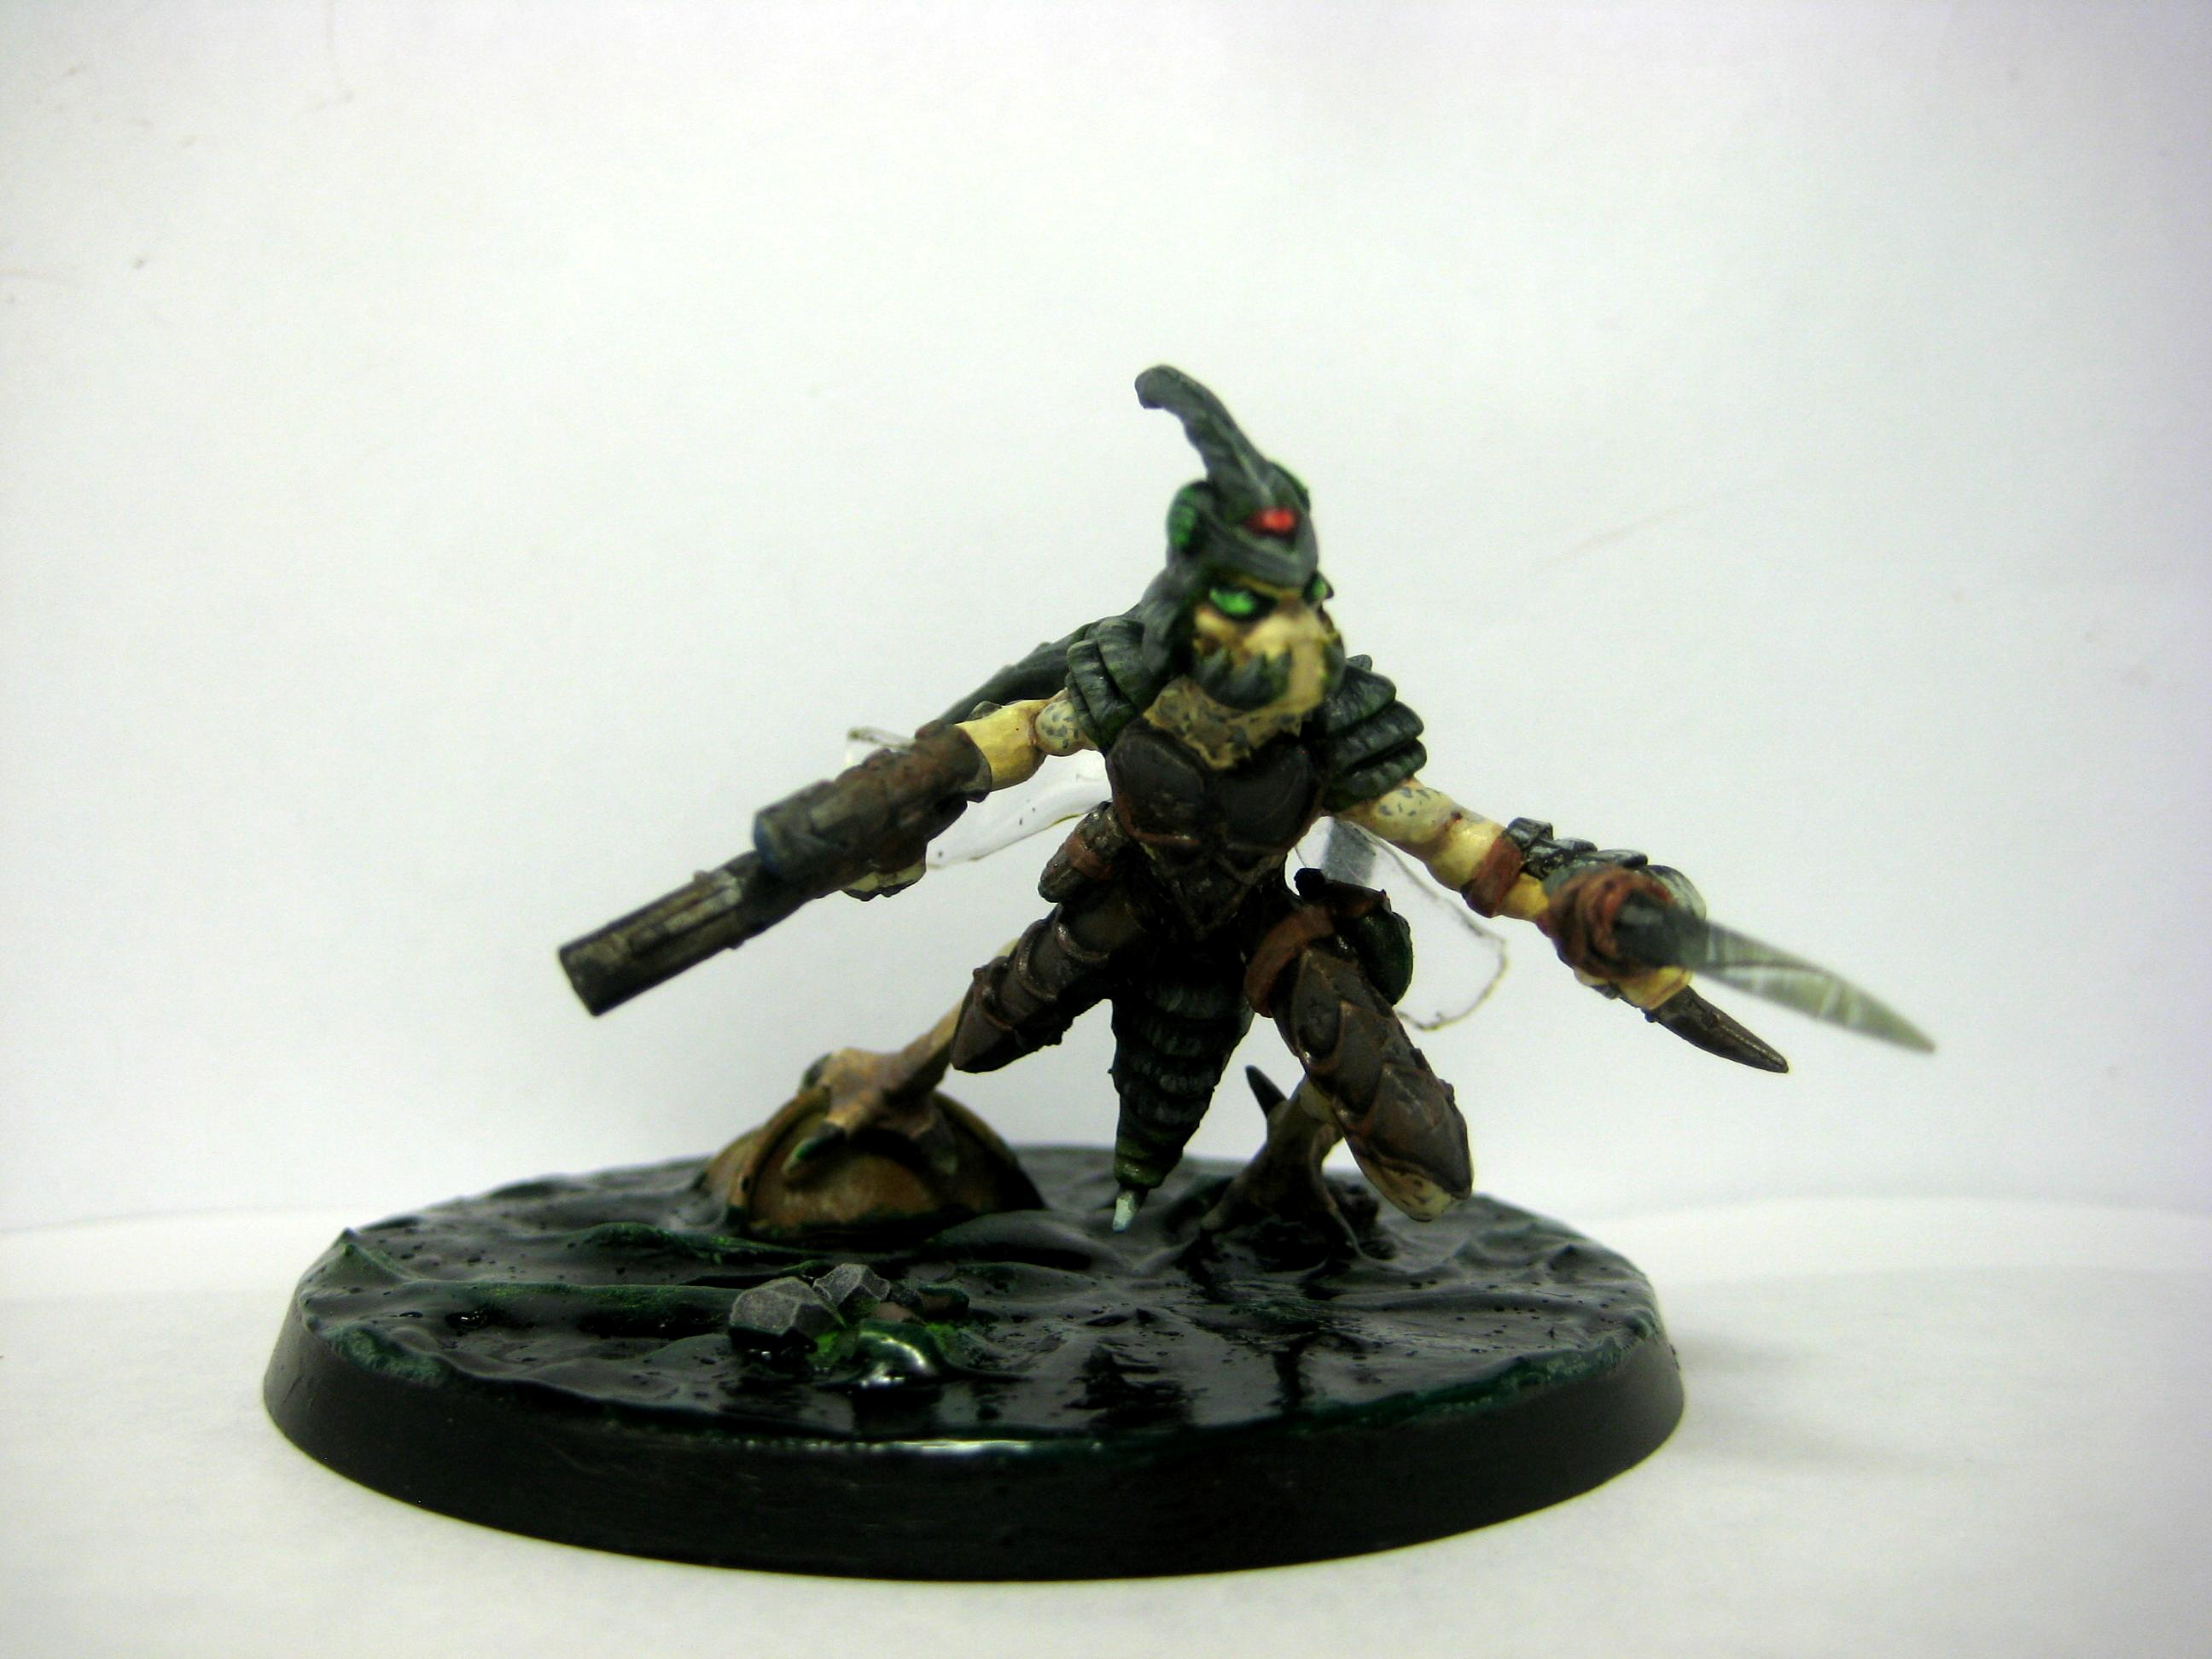 Assassin, Conversion, Greenstuff, Samurai, Sorcerer, Stingwing, Tau, Tzeentch, Warhammer 40,000, Warhammer Fantasy